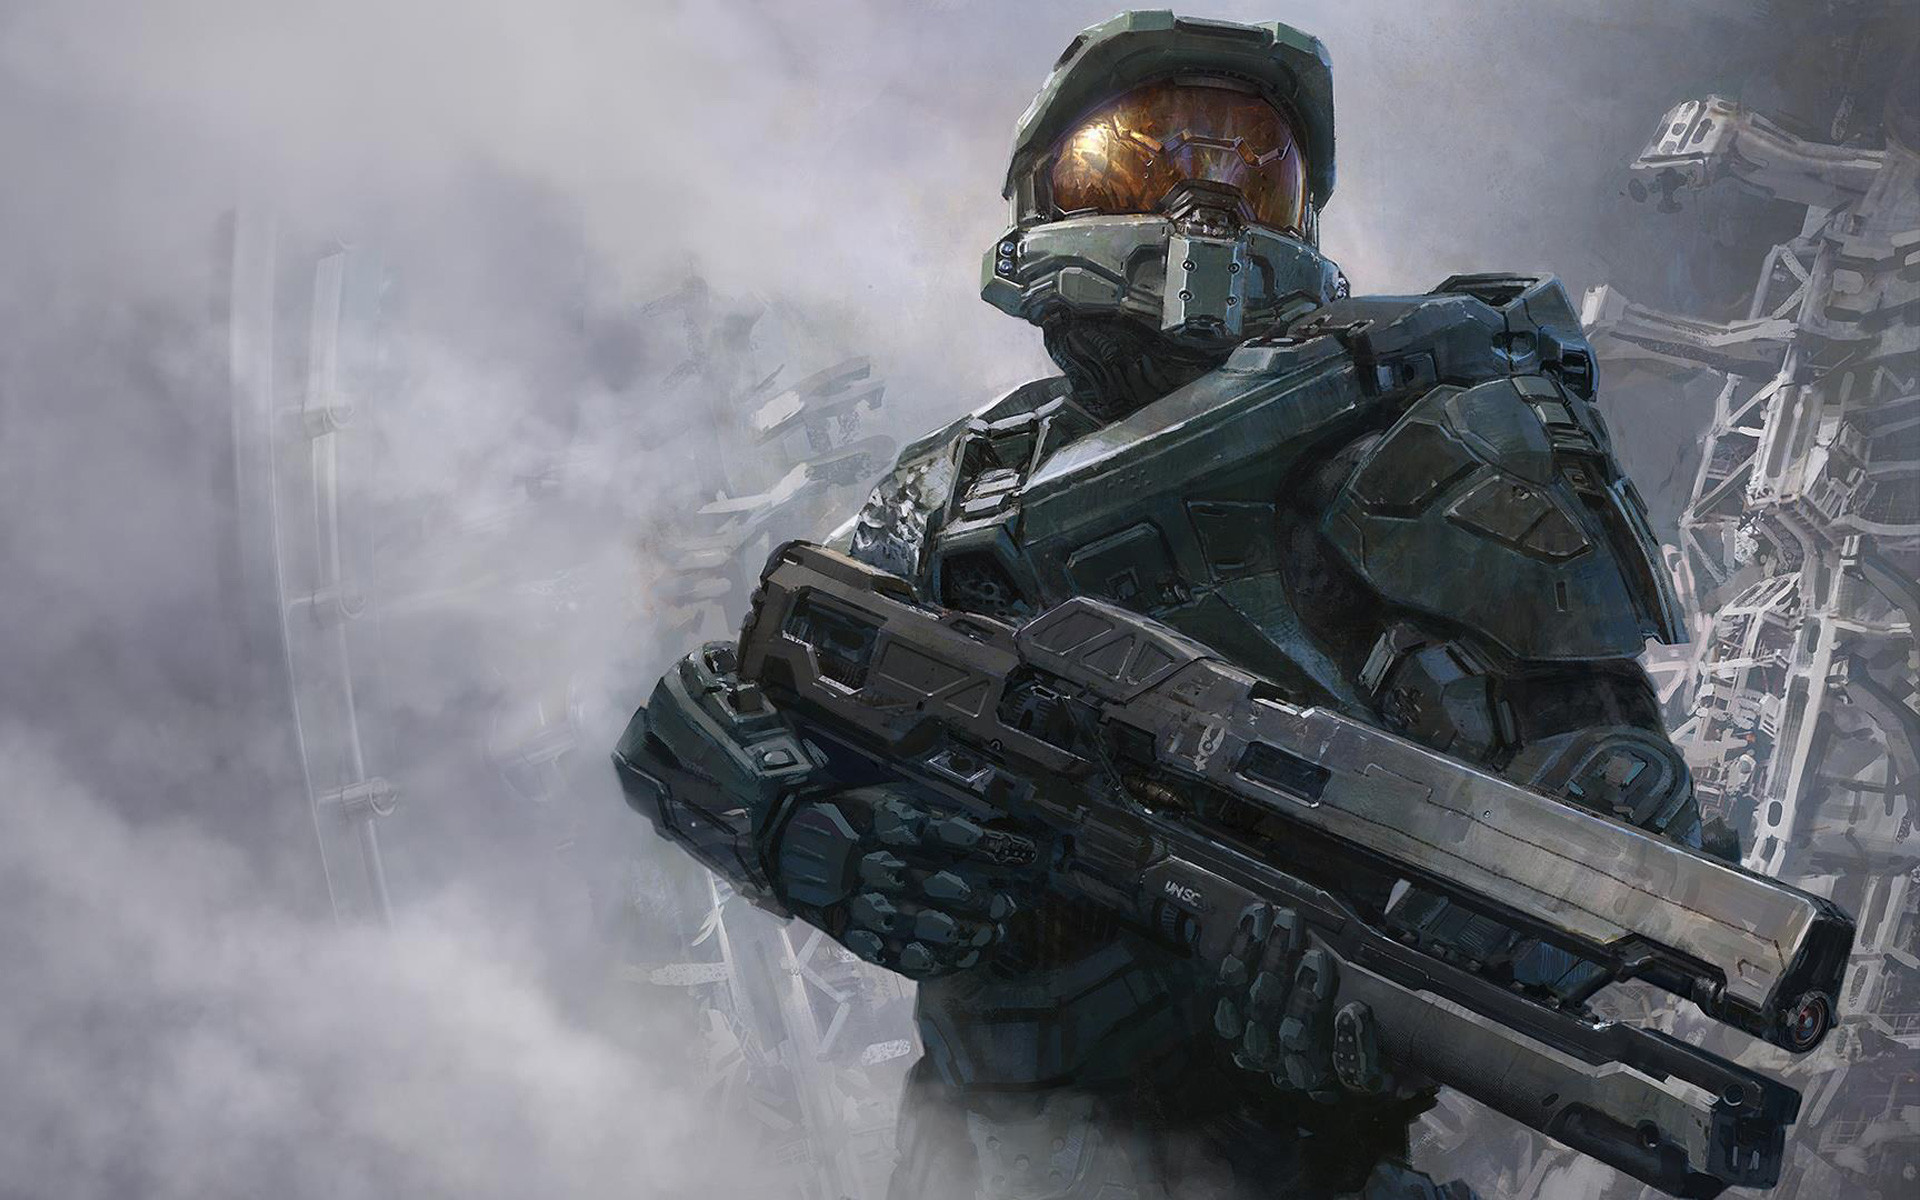 6 Awesome Halo 4 Wallpapers for your Desktop!